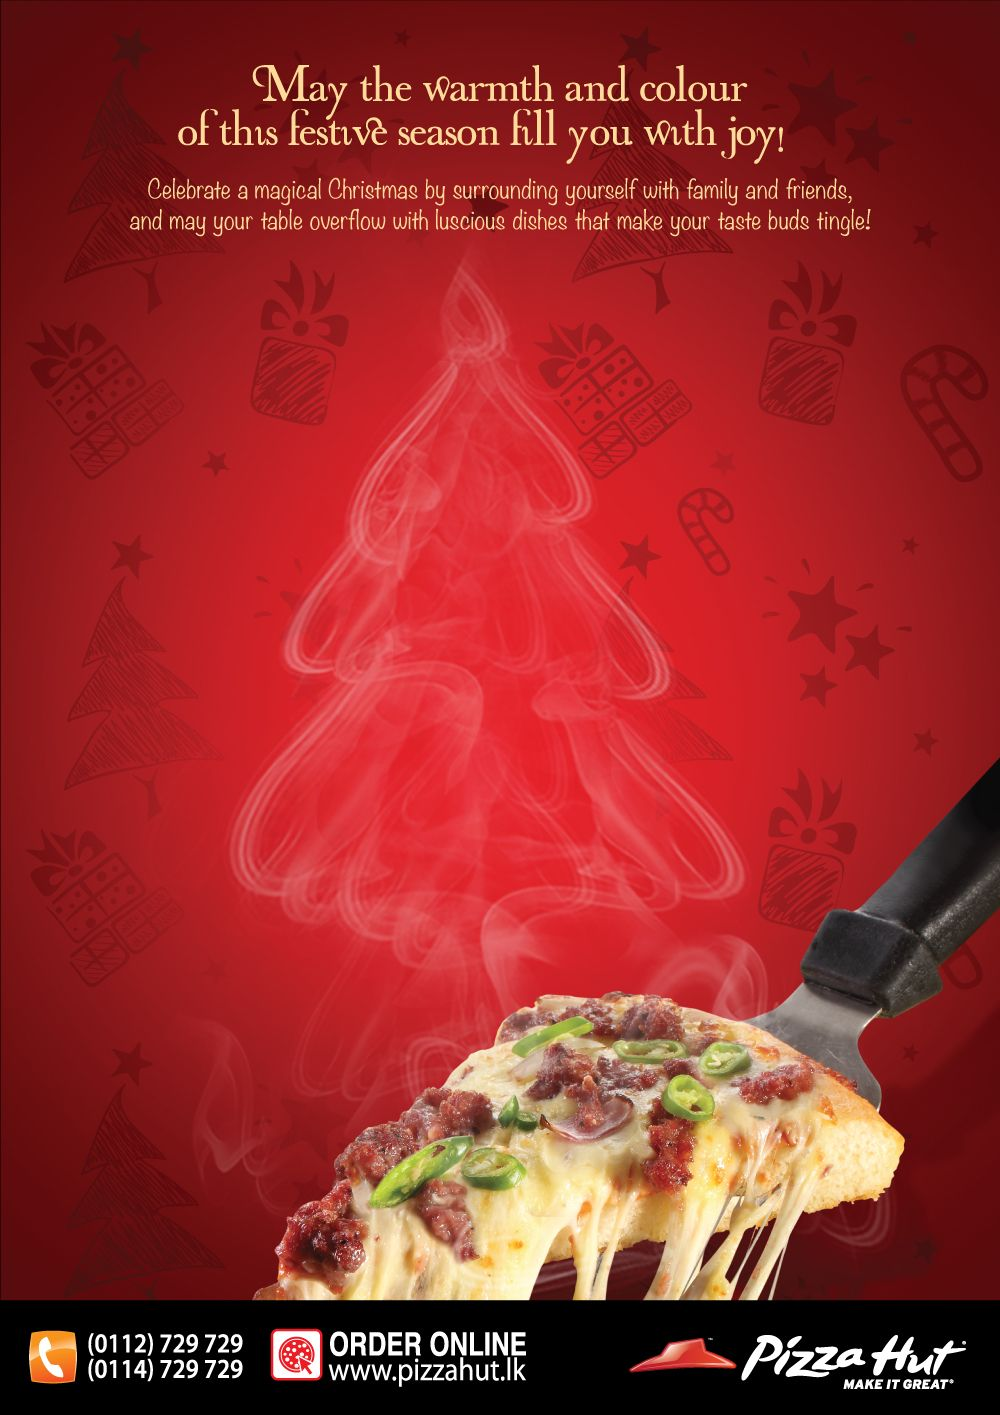 Is Pizza Hut Open On Christmas.Merry Christmas From Pizza Hut E Mail Advertising Pizza